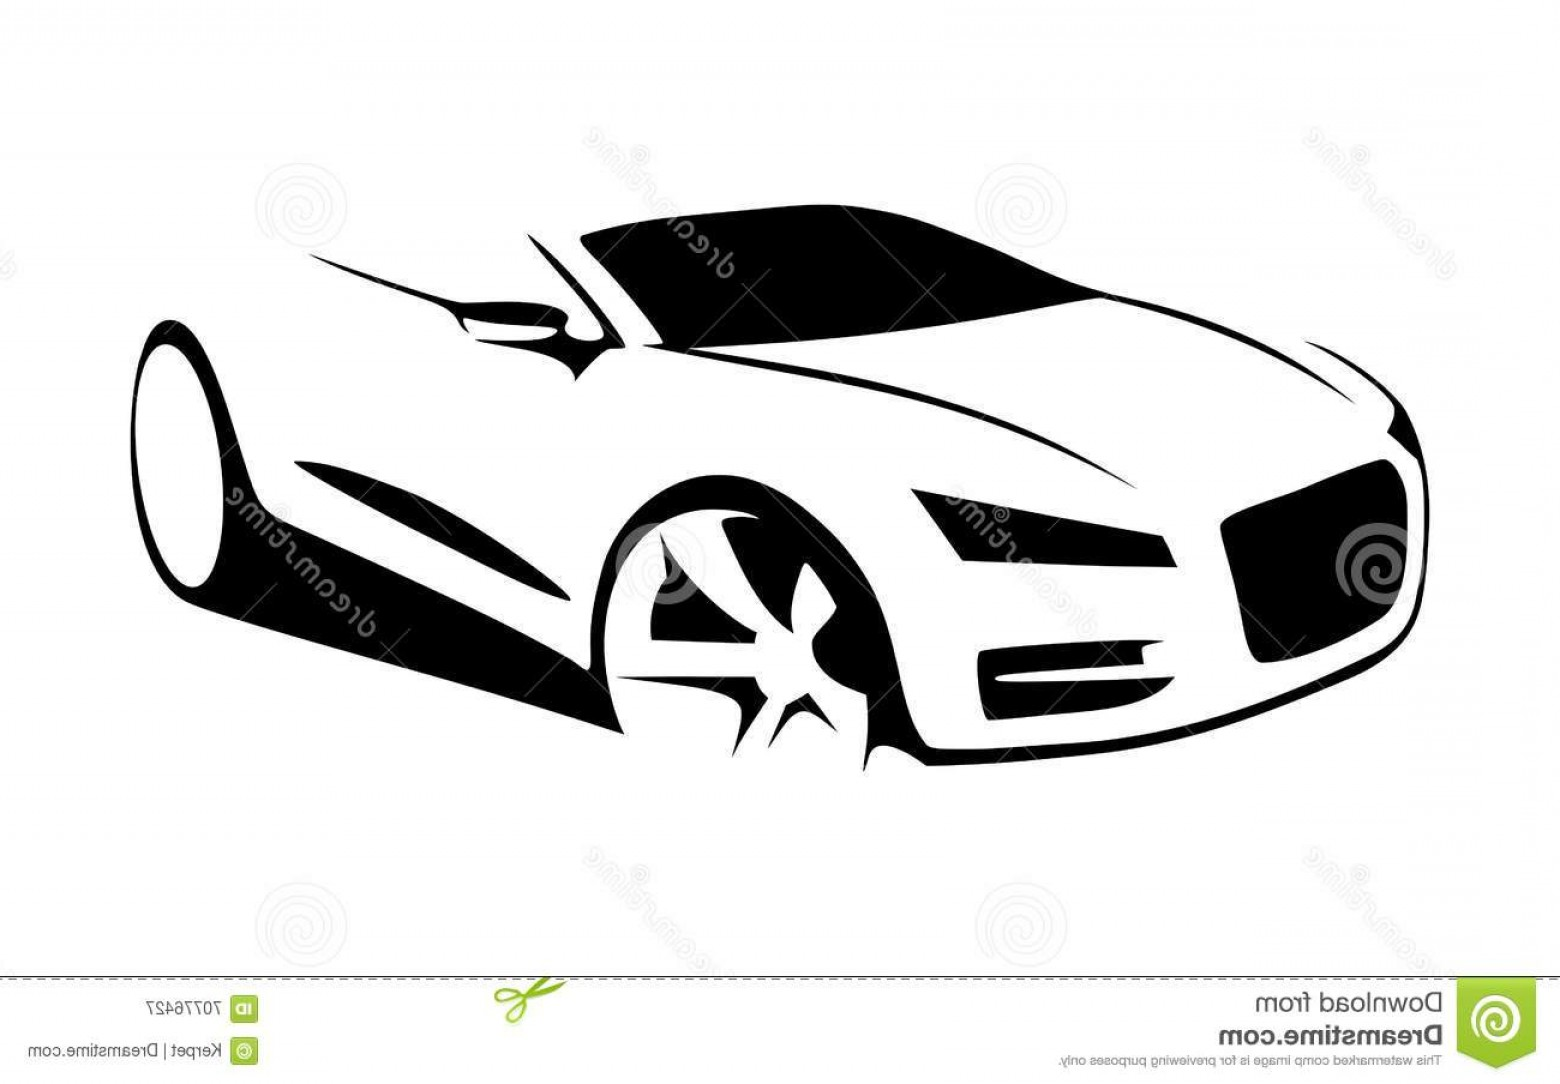 Car Silhouette Vector Free: Stock Illustration Car Silhouette Vector Side View Image